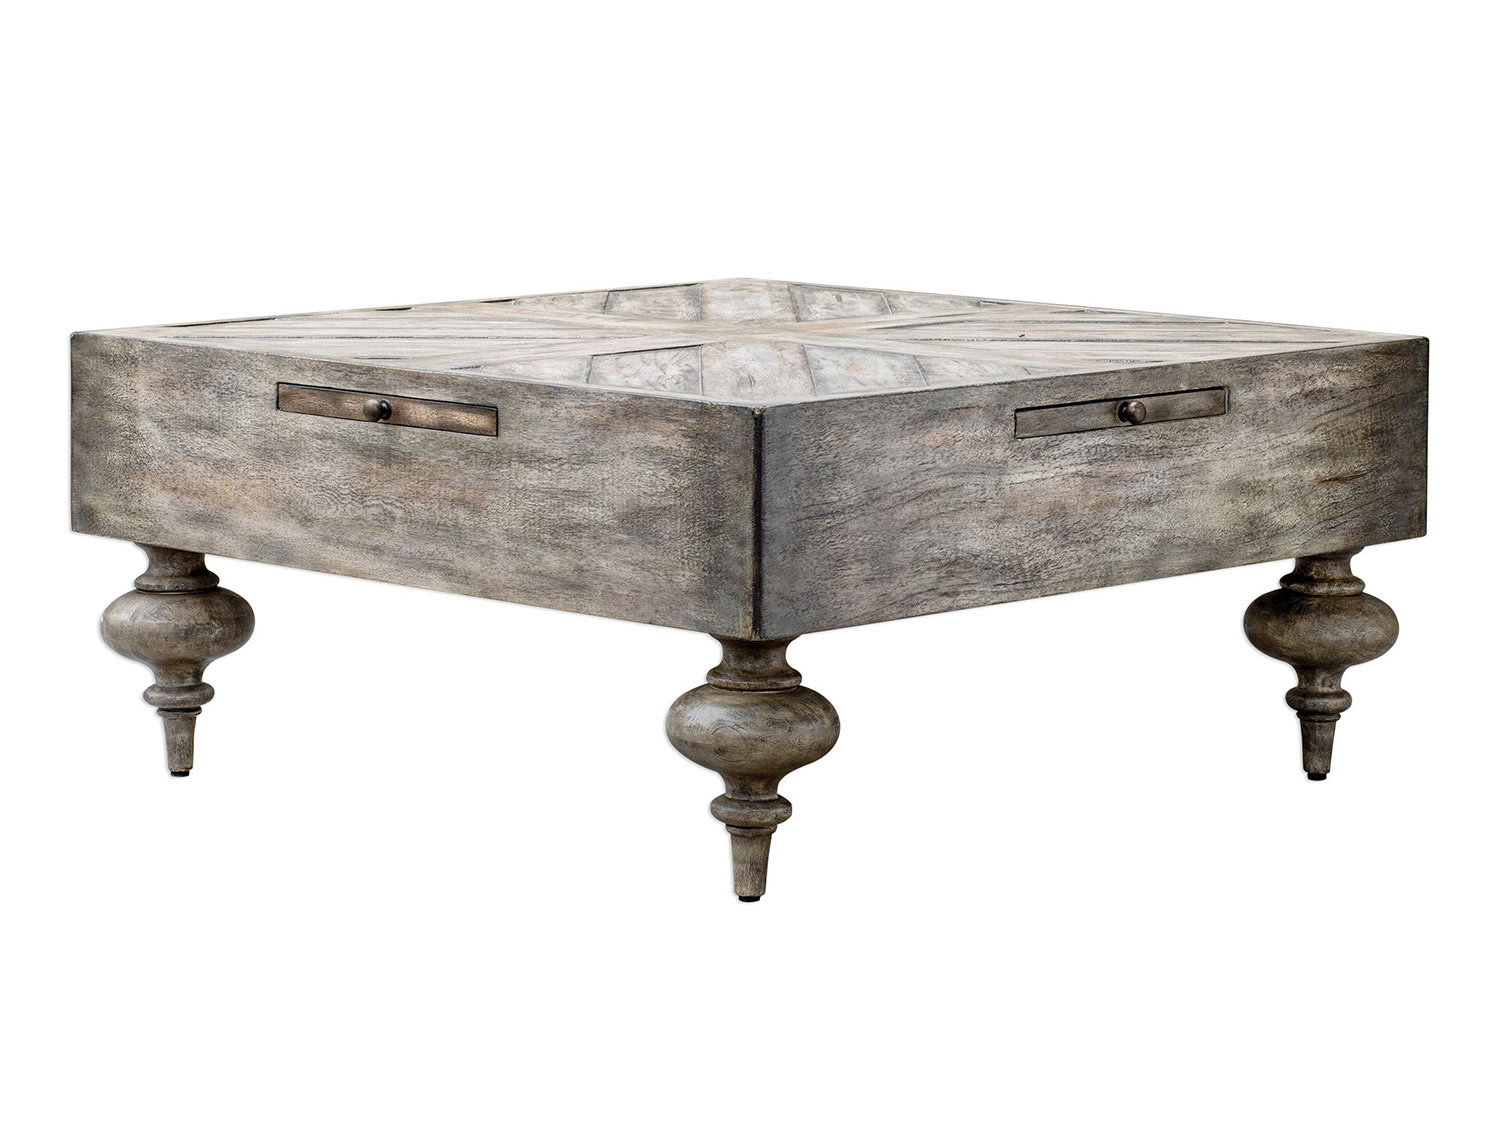 Uttermost Nikita Coffee Table Driftwood UTTERMOST At - Uttermost driftwood coffee table